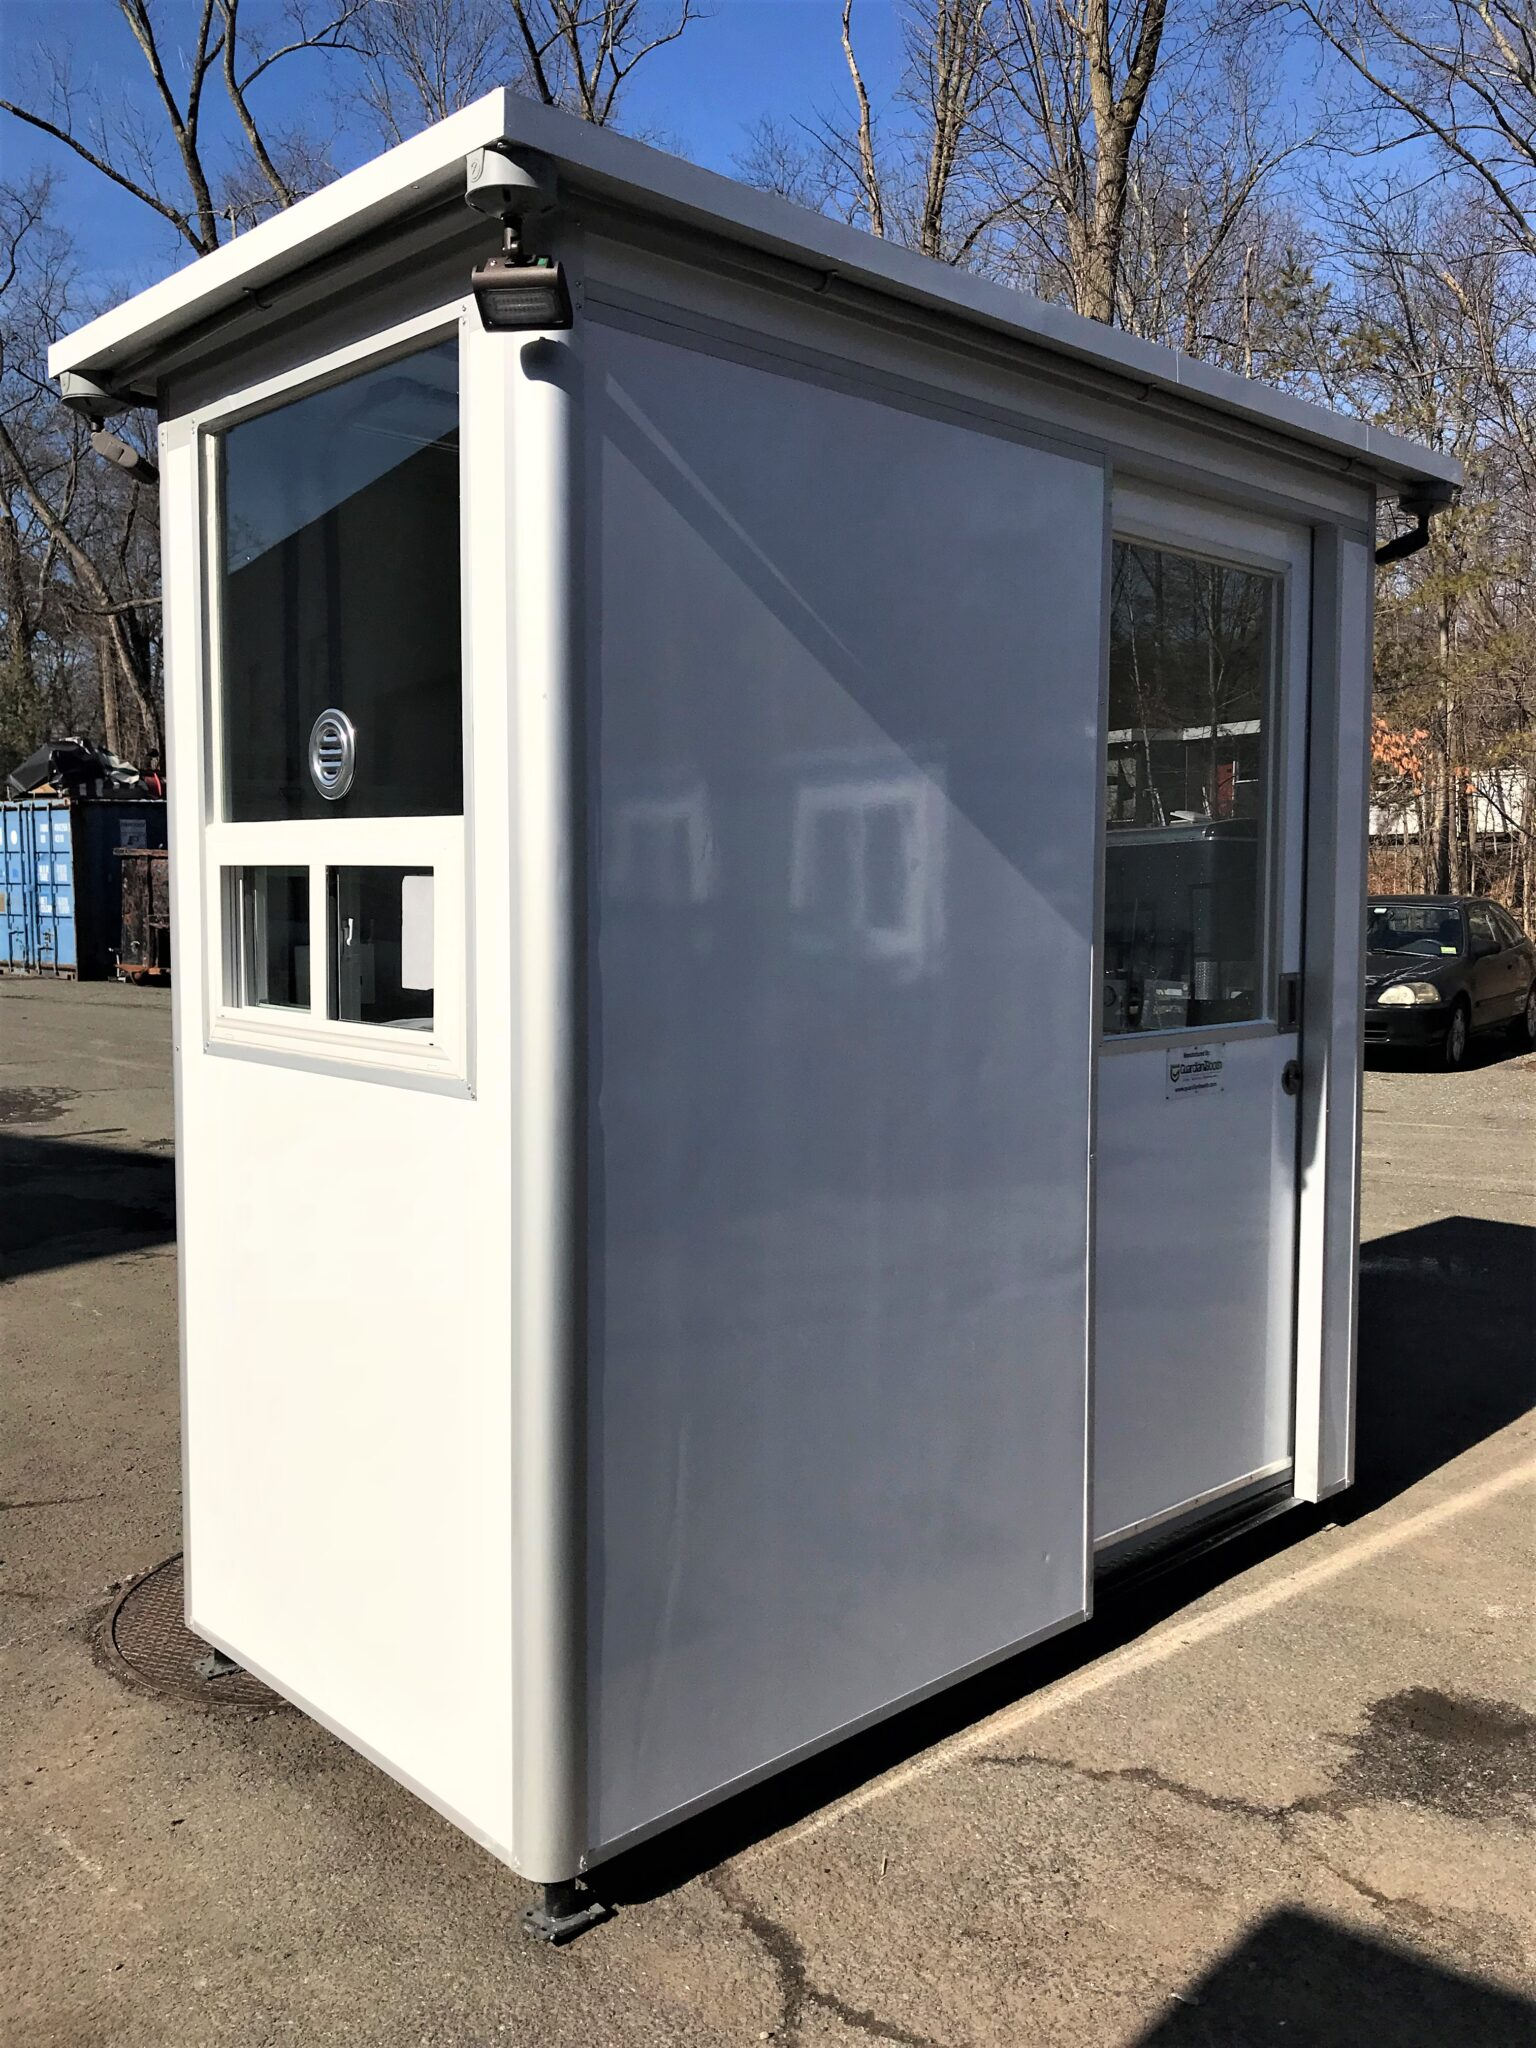 4x6 Cashier Booth with Ticket Transaction Windows, Sliding Door, Outside Spotlights, Custom Exterior Color, and Anchoring Brackets